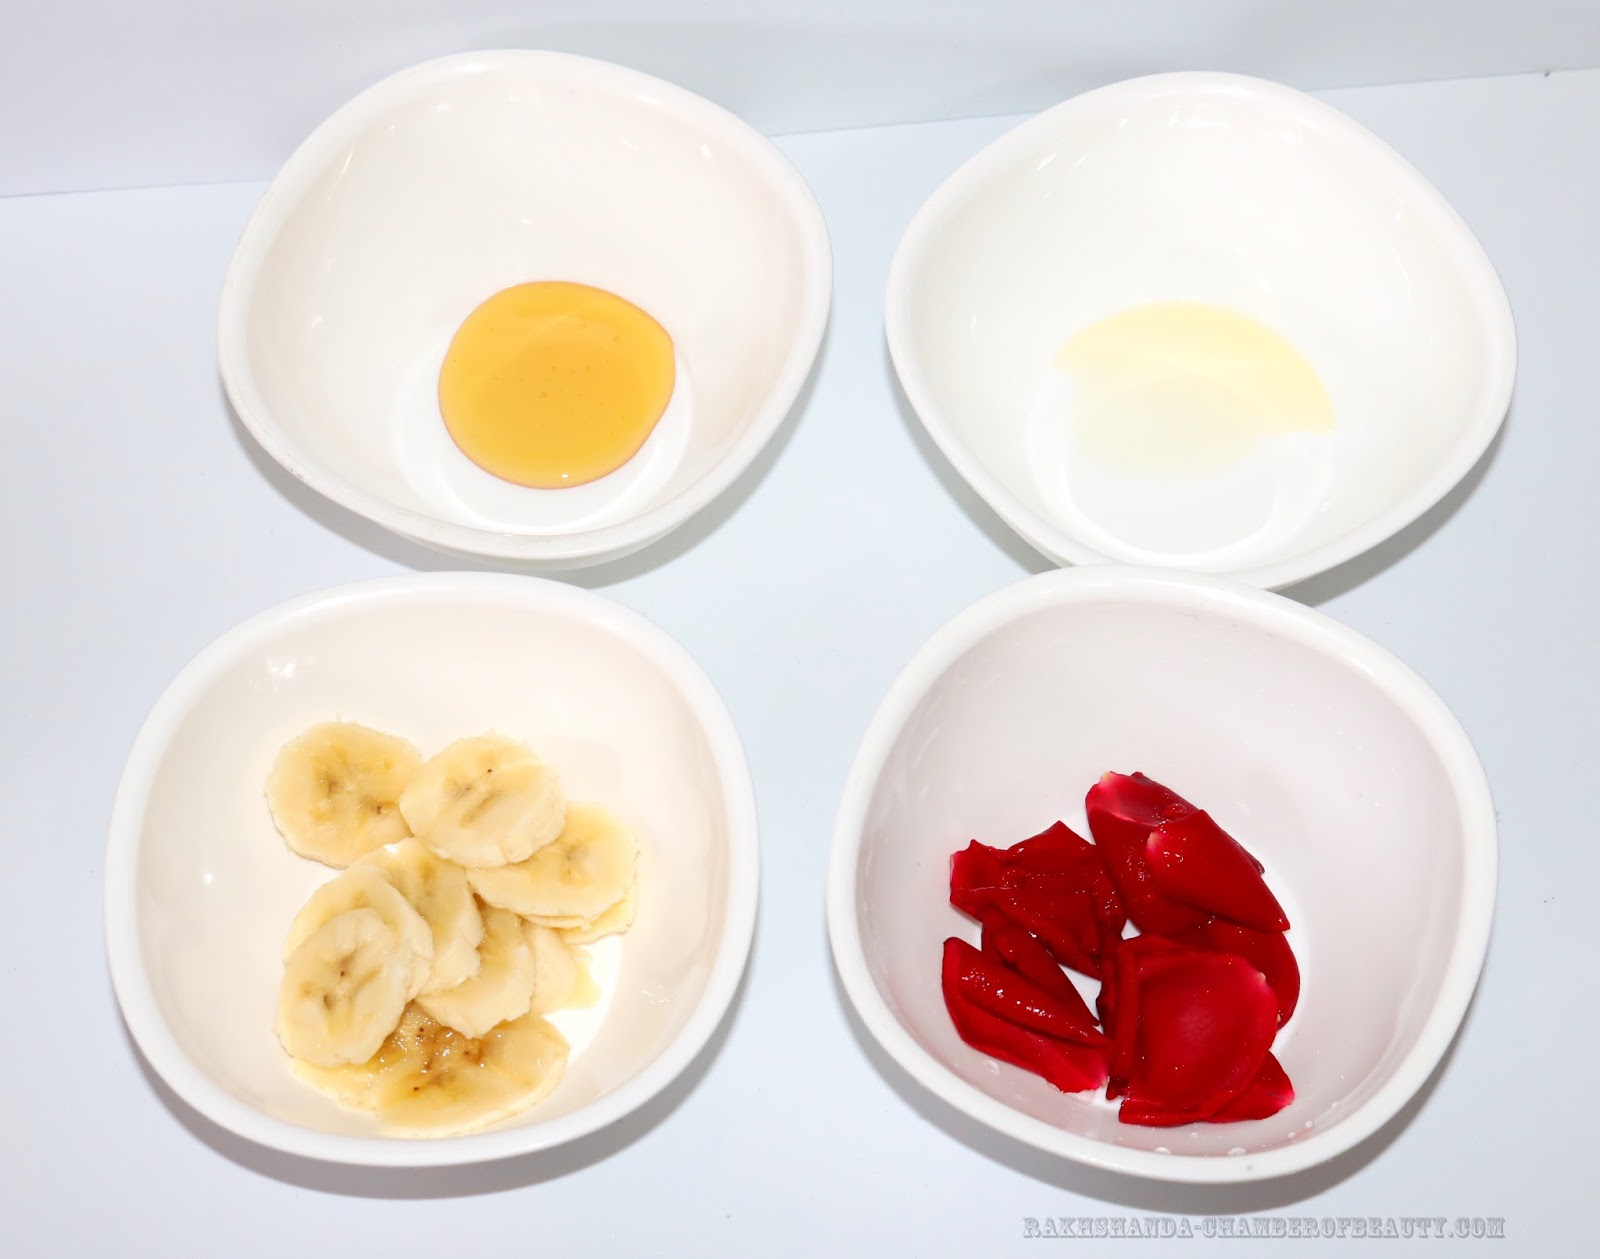 rakhshanda-chamberofbeauty.com/DIY/Banana & Rose Petals Face Pack for Dry skin